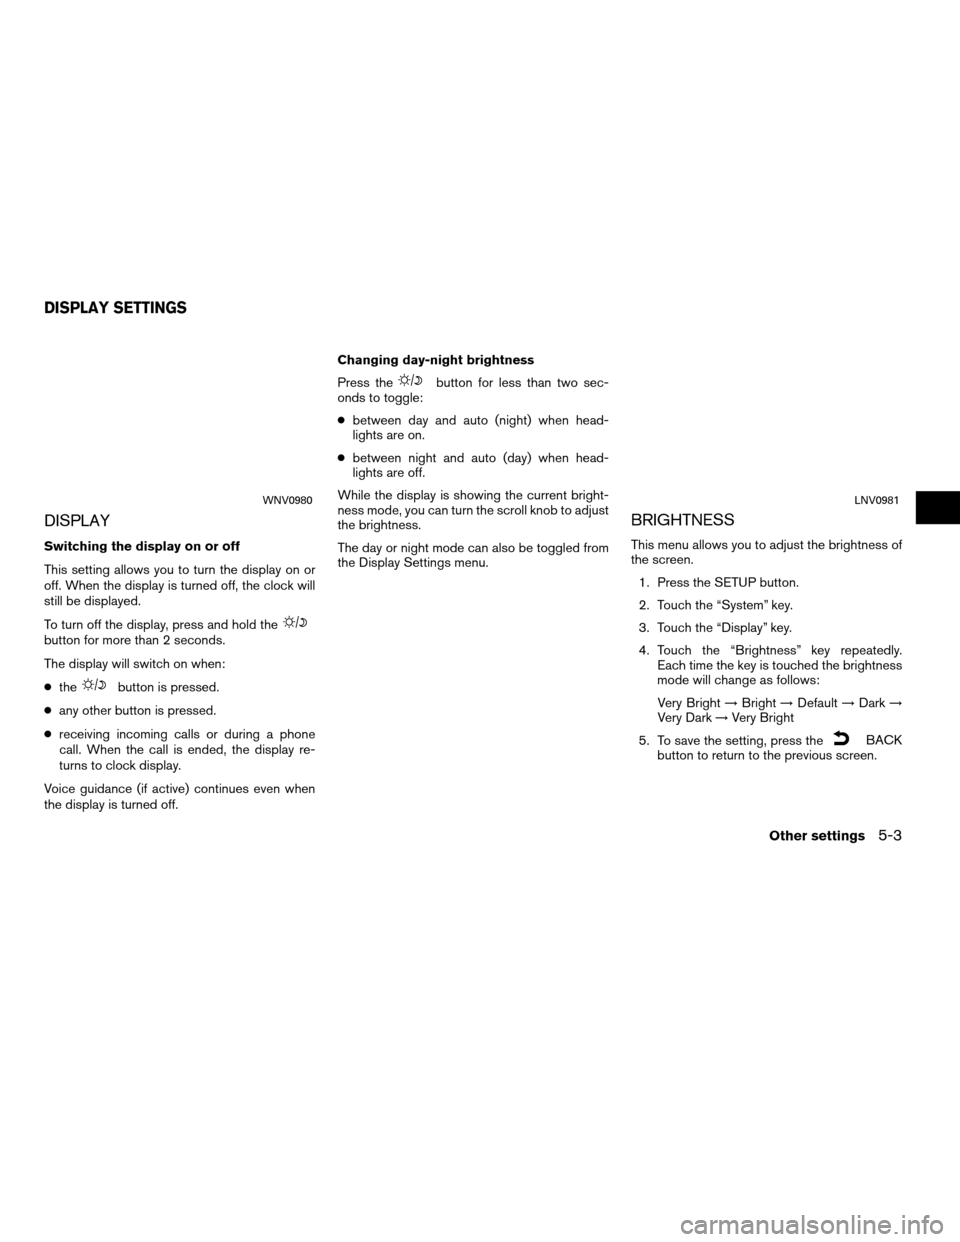 NISSAN CUBE 2011 3.G LC Navigation Manual, Page 63